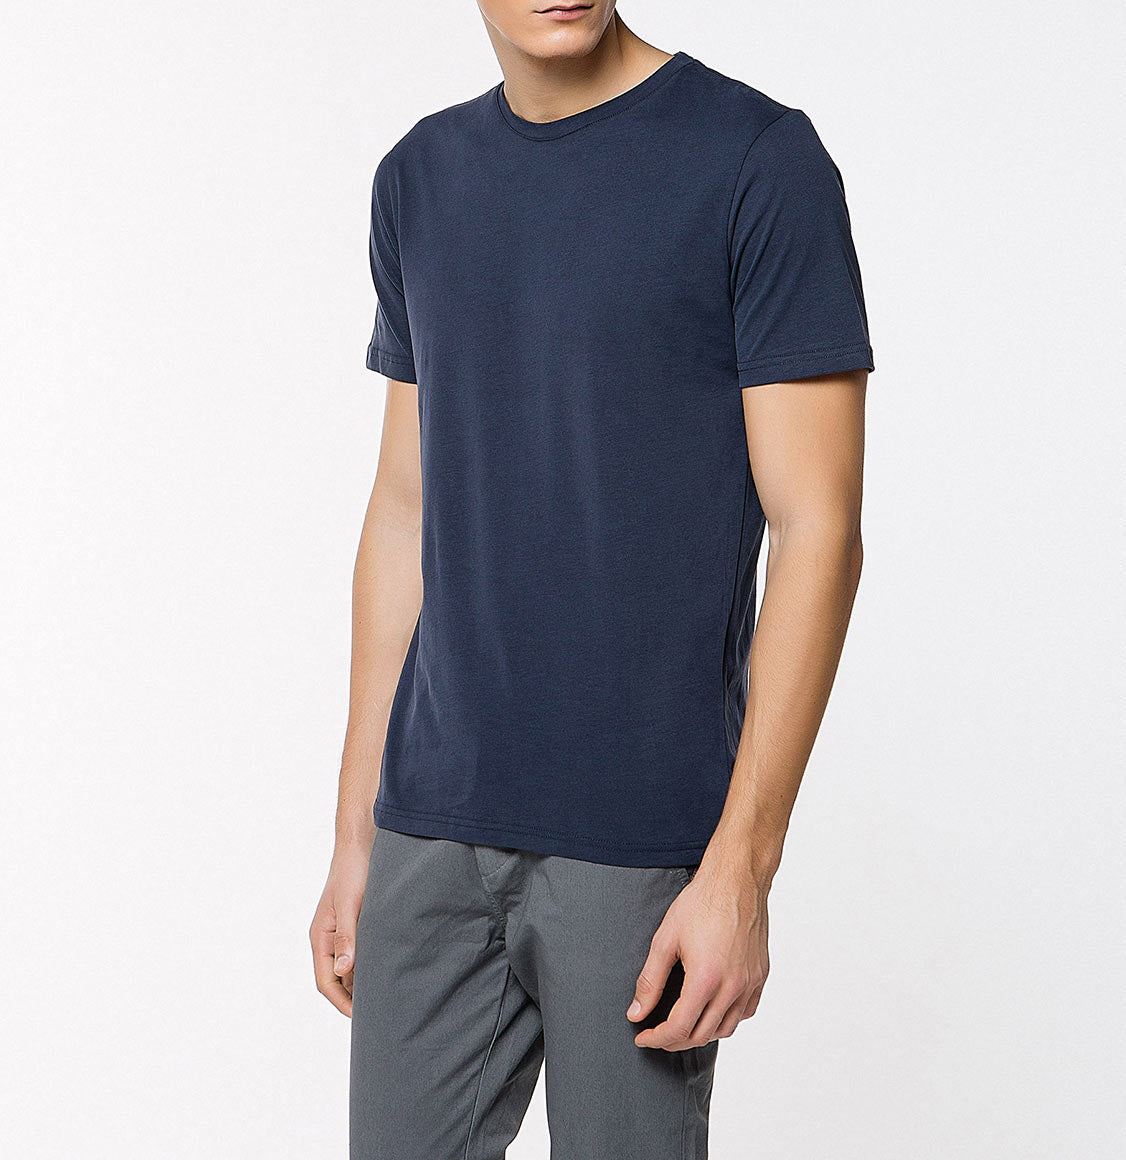 Crew Neck Supima Cotton T-shirt Navy Blue | The Project Garments - Front